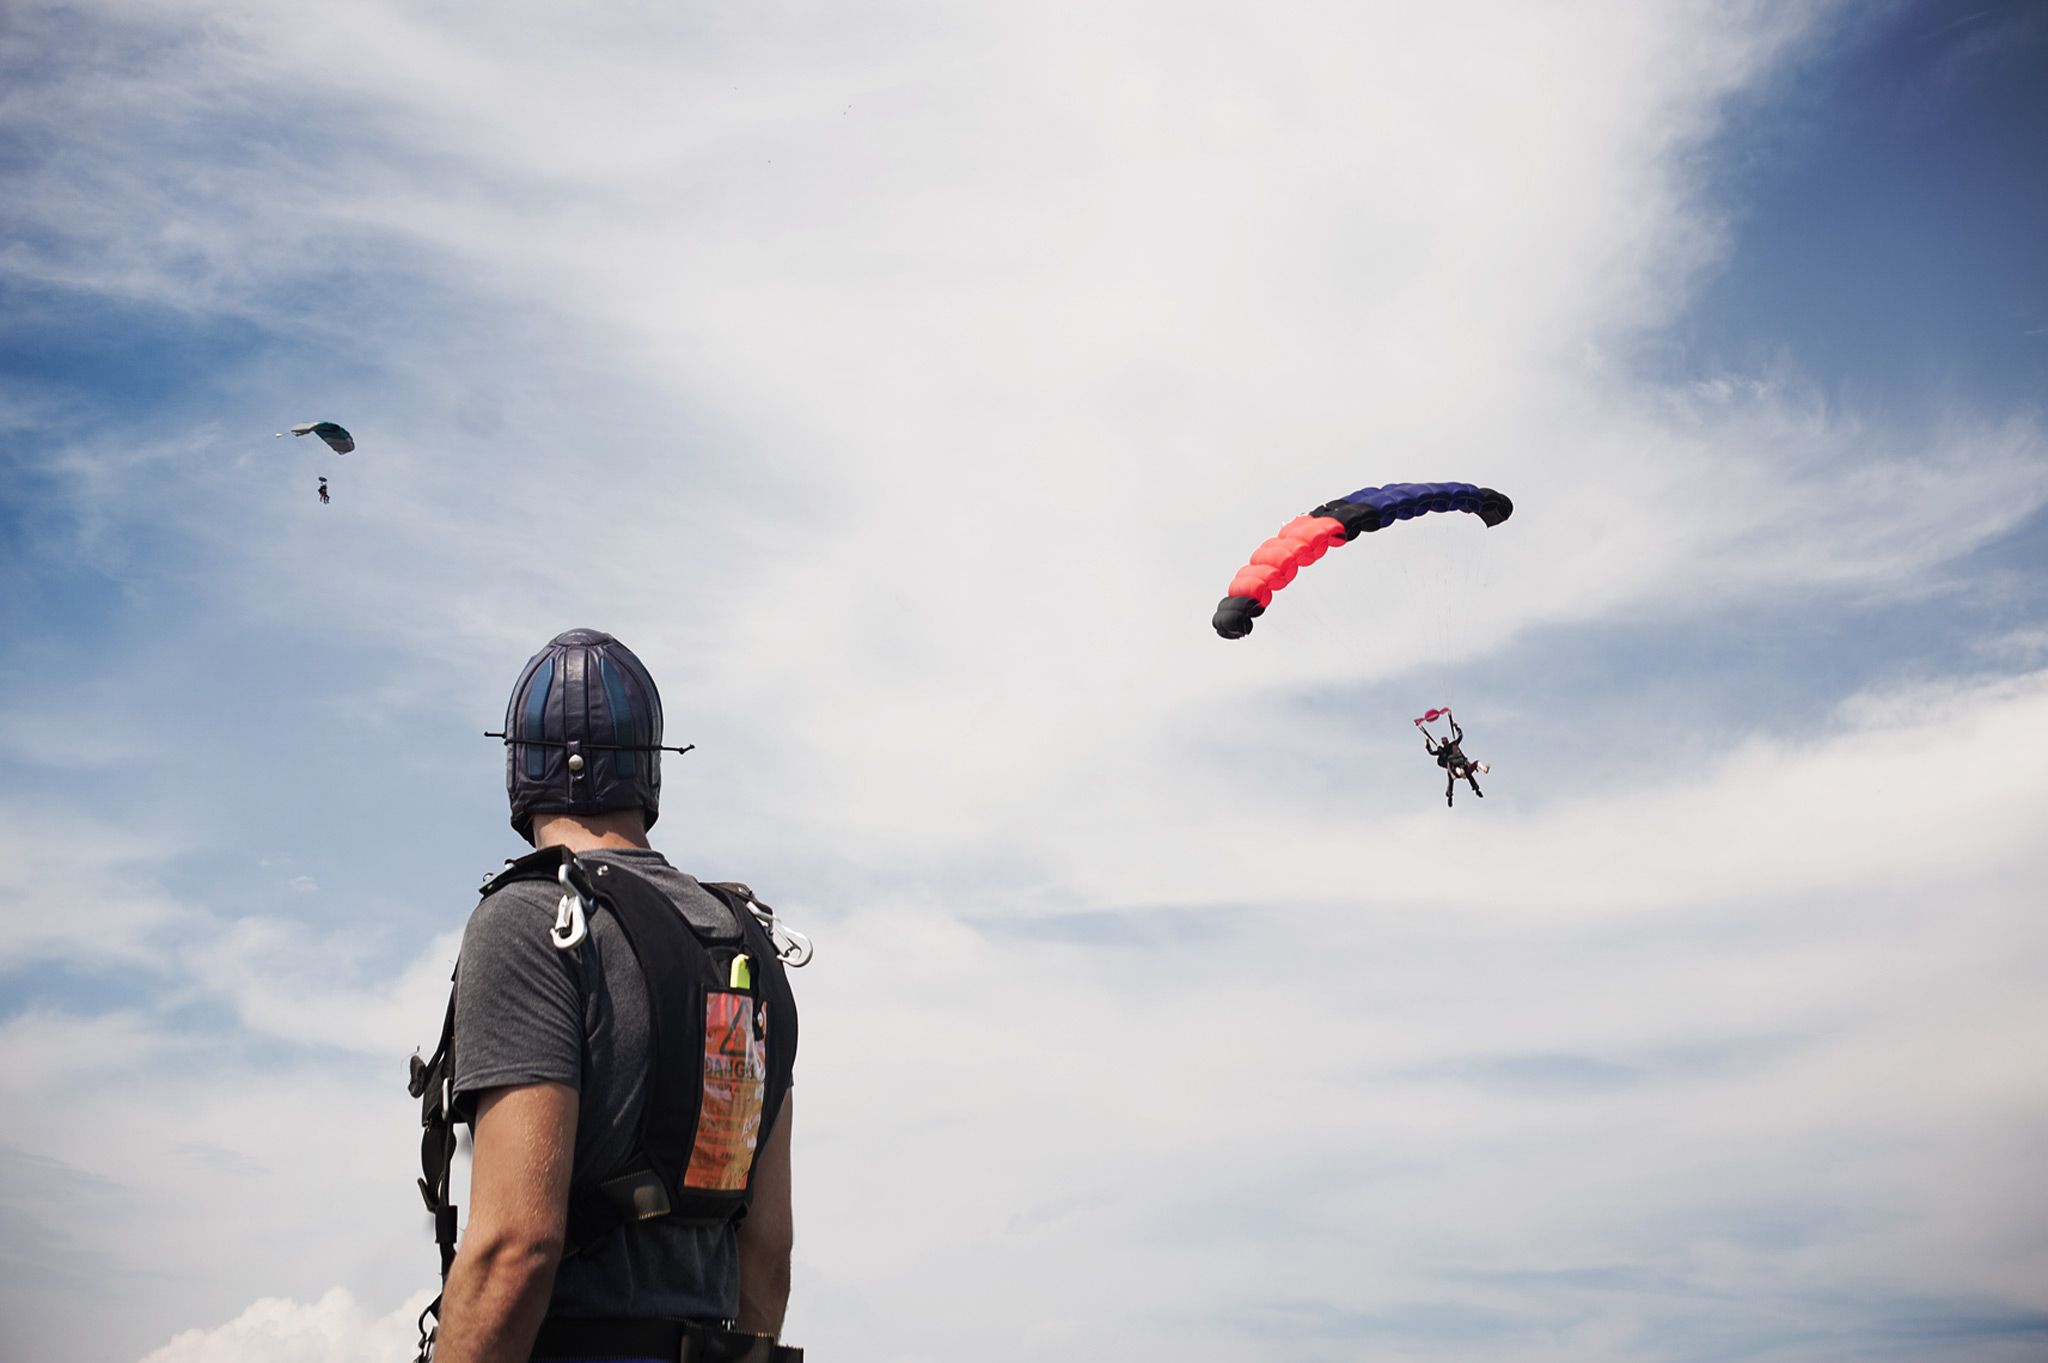 Skydiver watching others parachute in